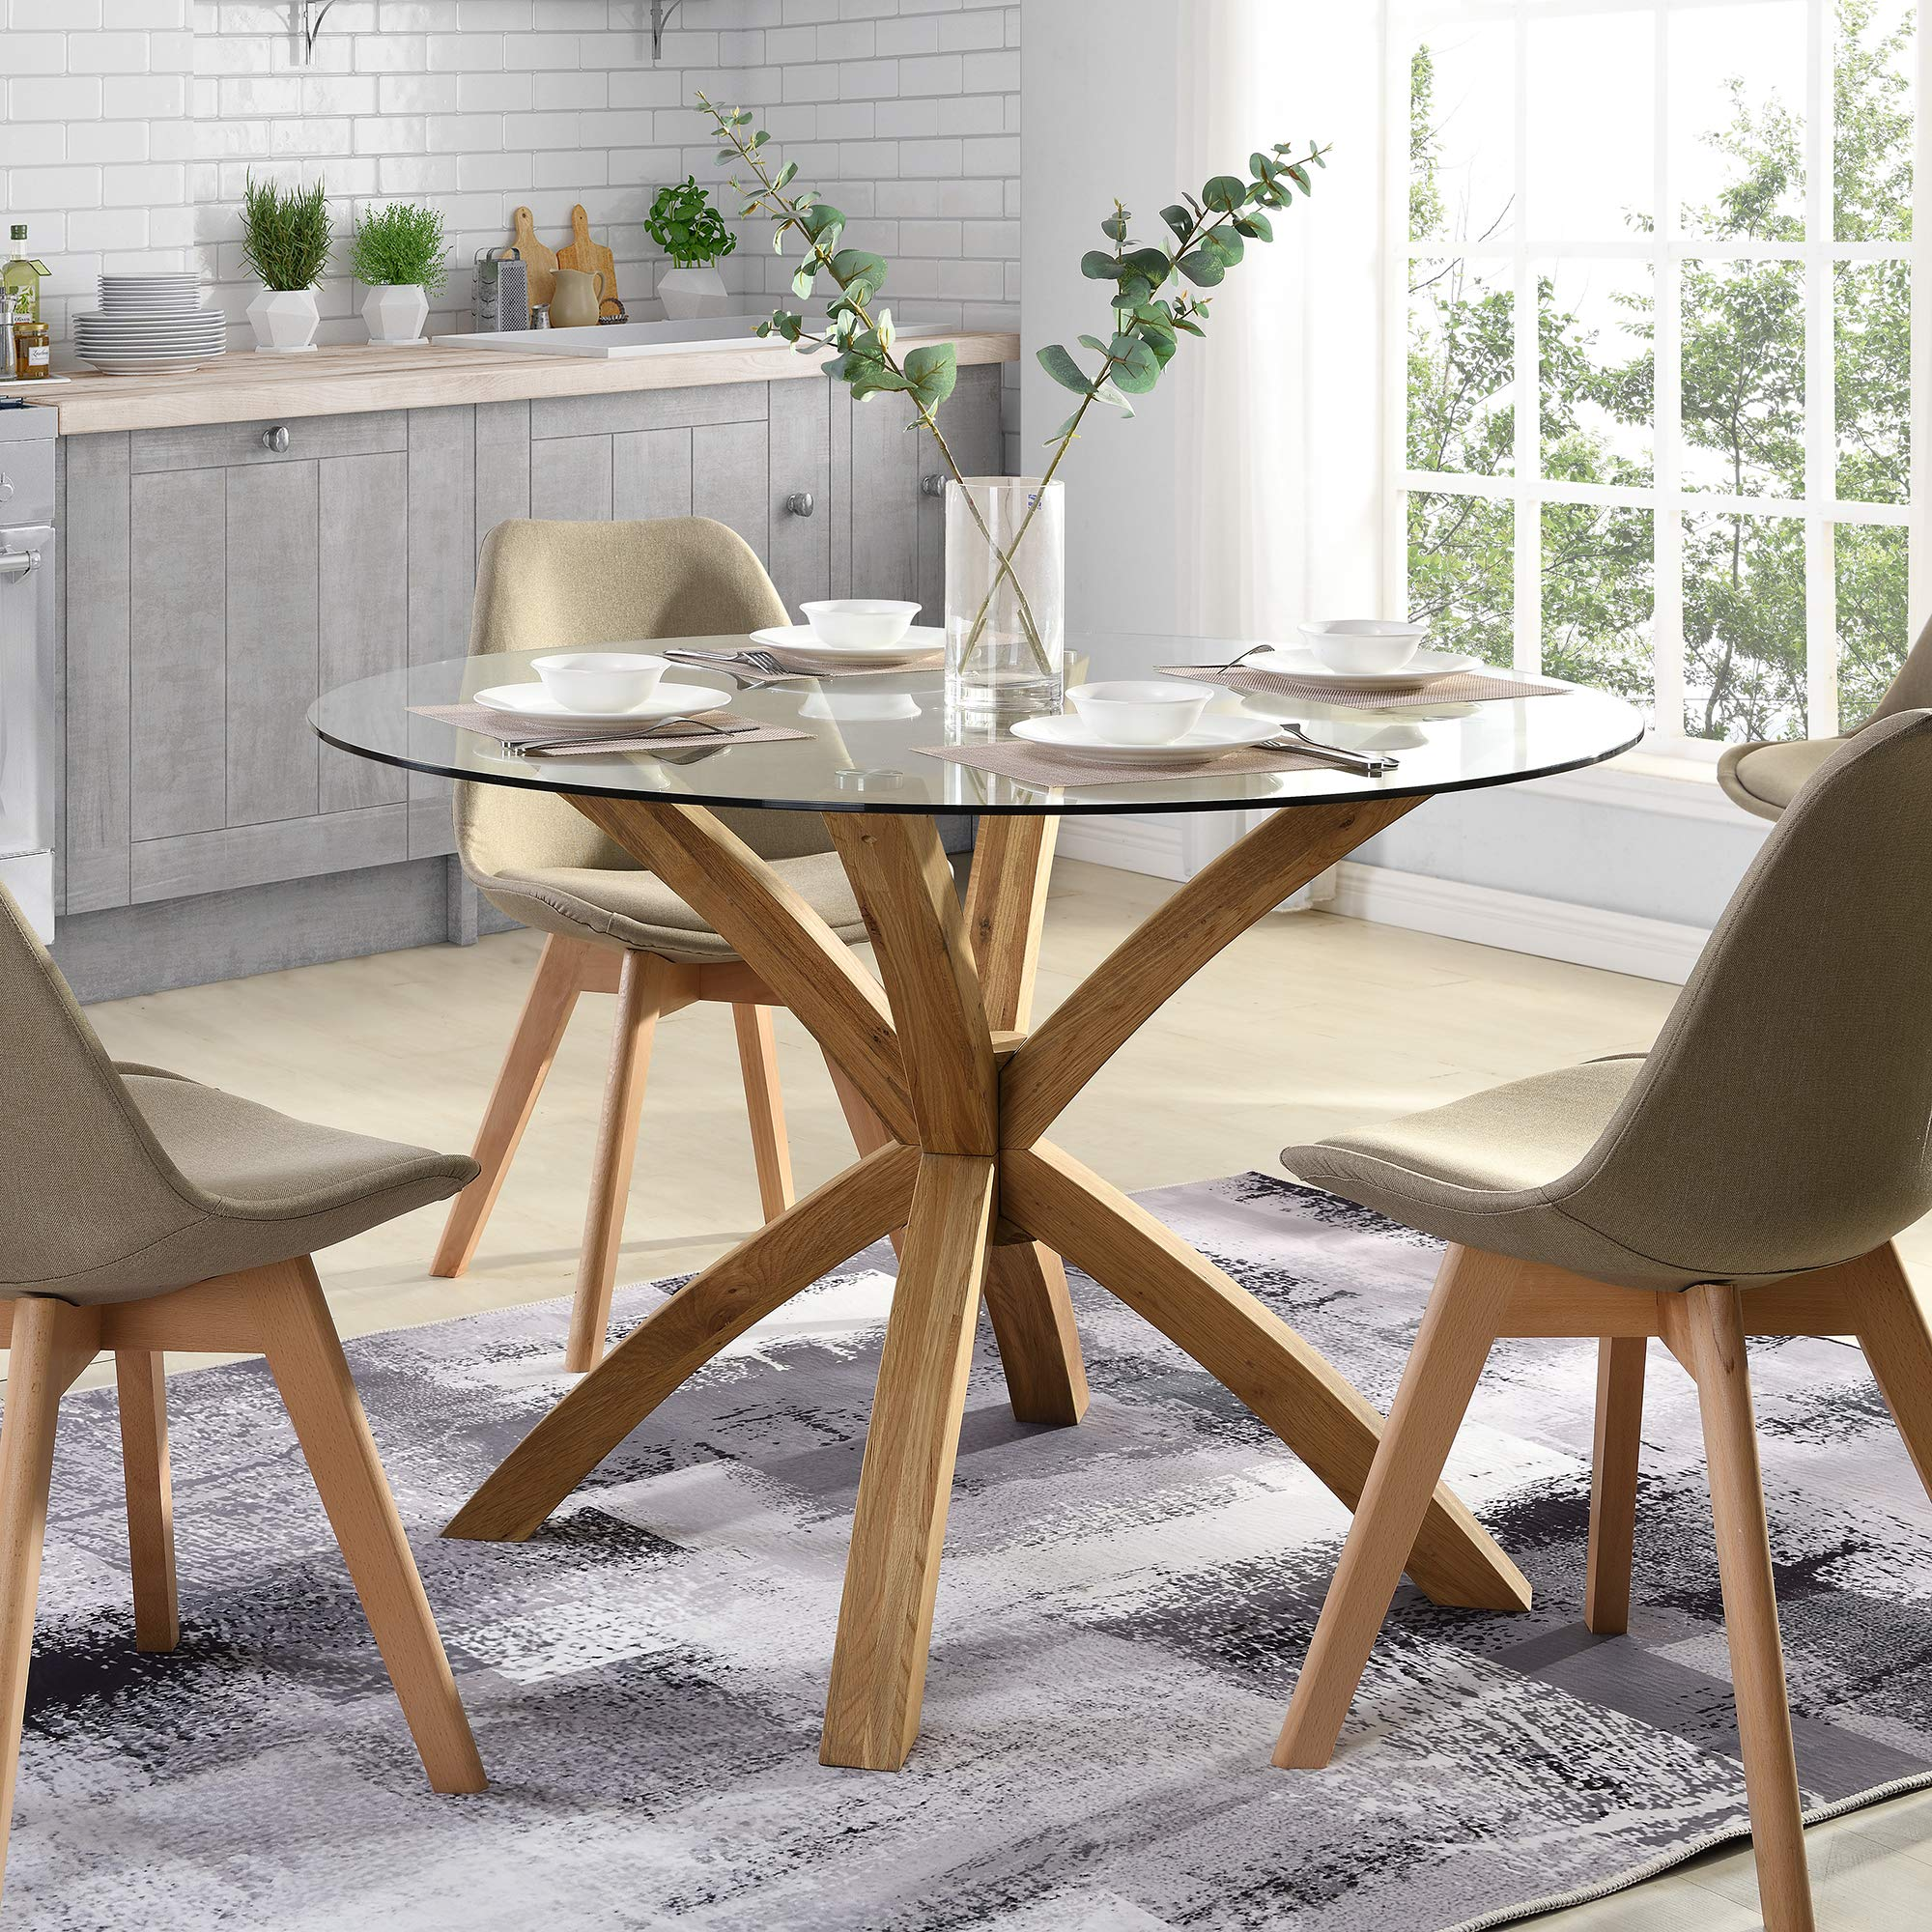 Cherry Tree Furniture Glass Round Dining Table with Solid Oak Legs